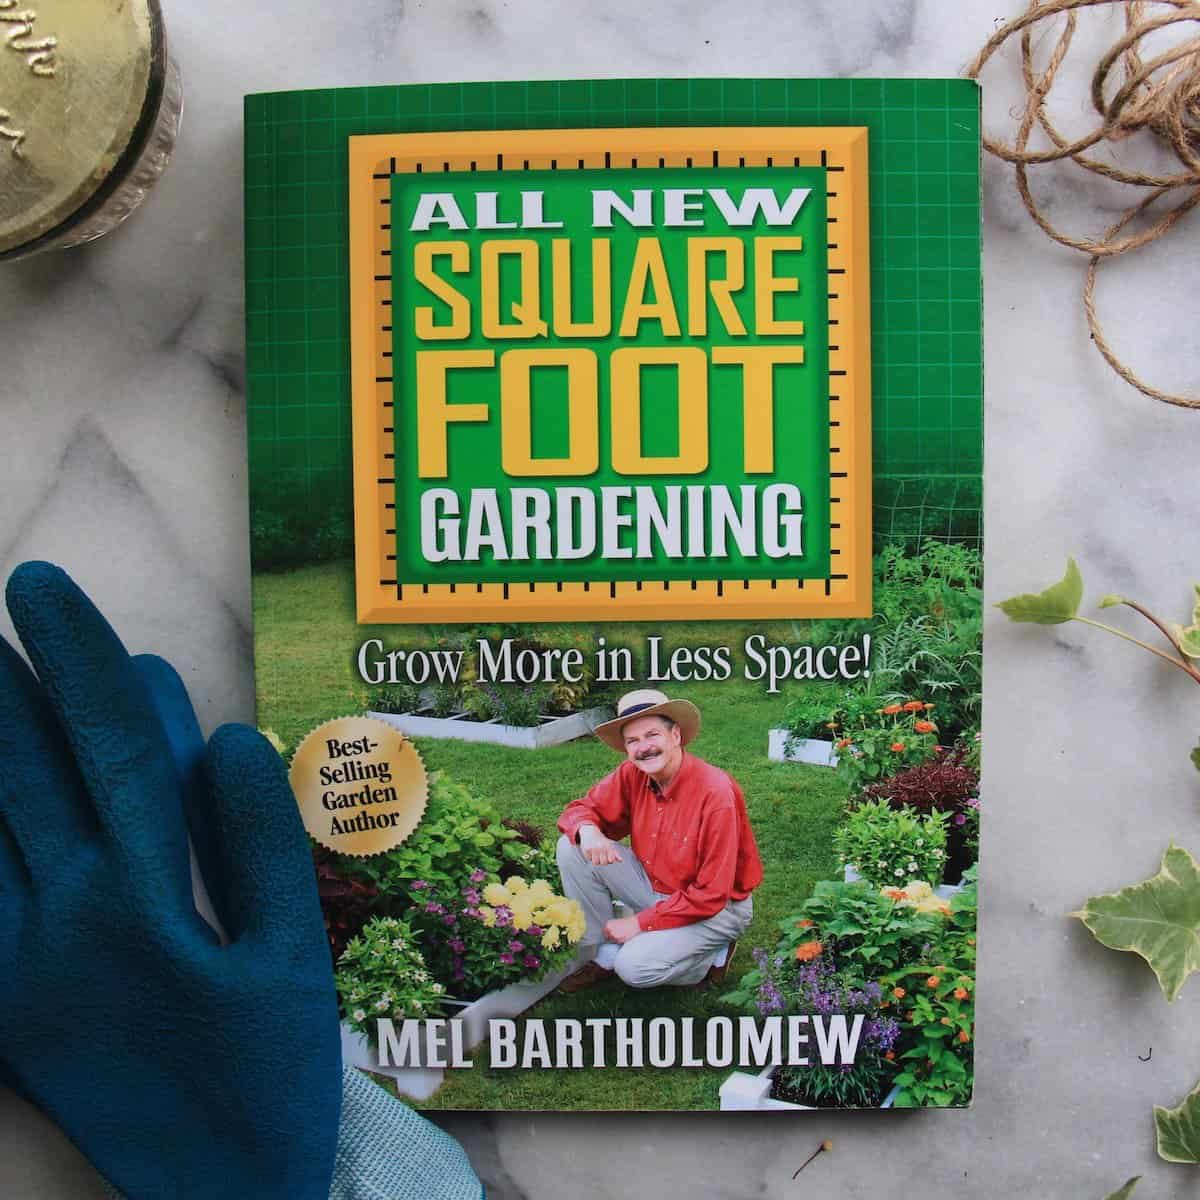 Square foot gardening book - The All New Square Foot Gardening Book List Of Gardening Books The Best Ones